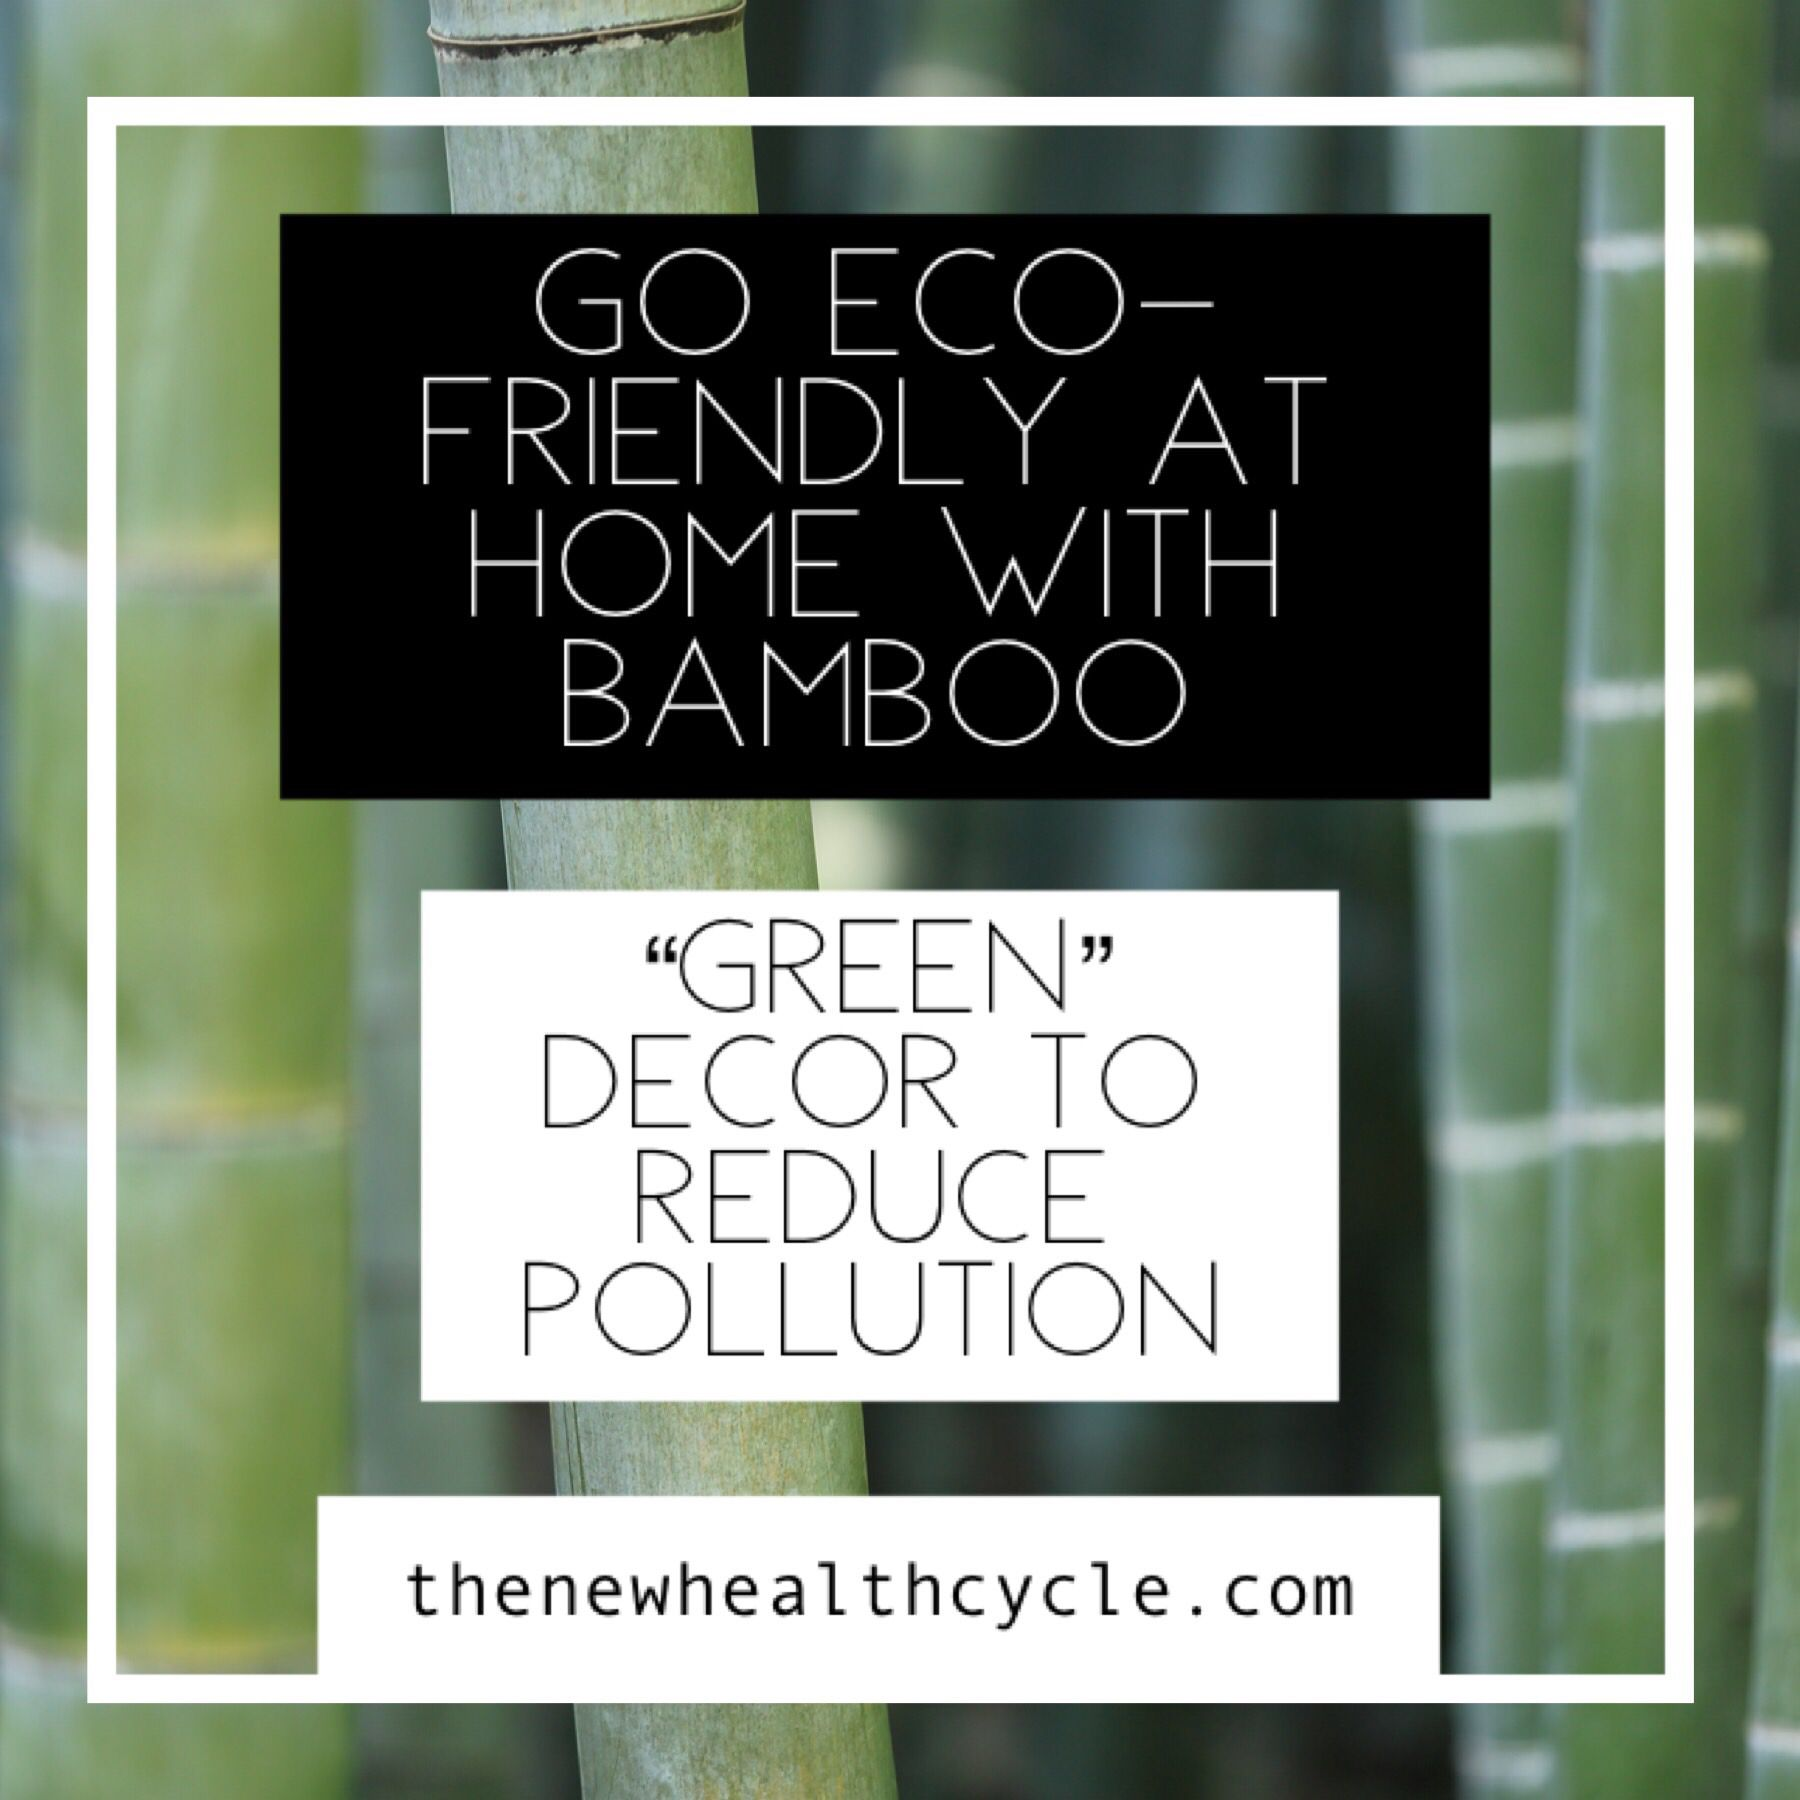 Go EcoFriendly at Home with Bamboo Green Decor to Reduce